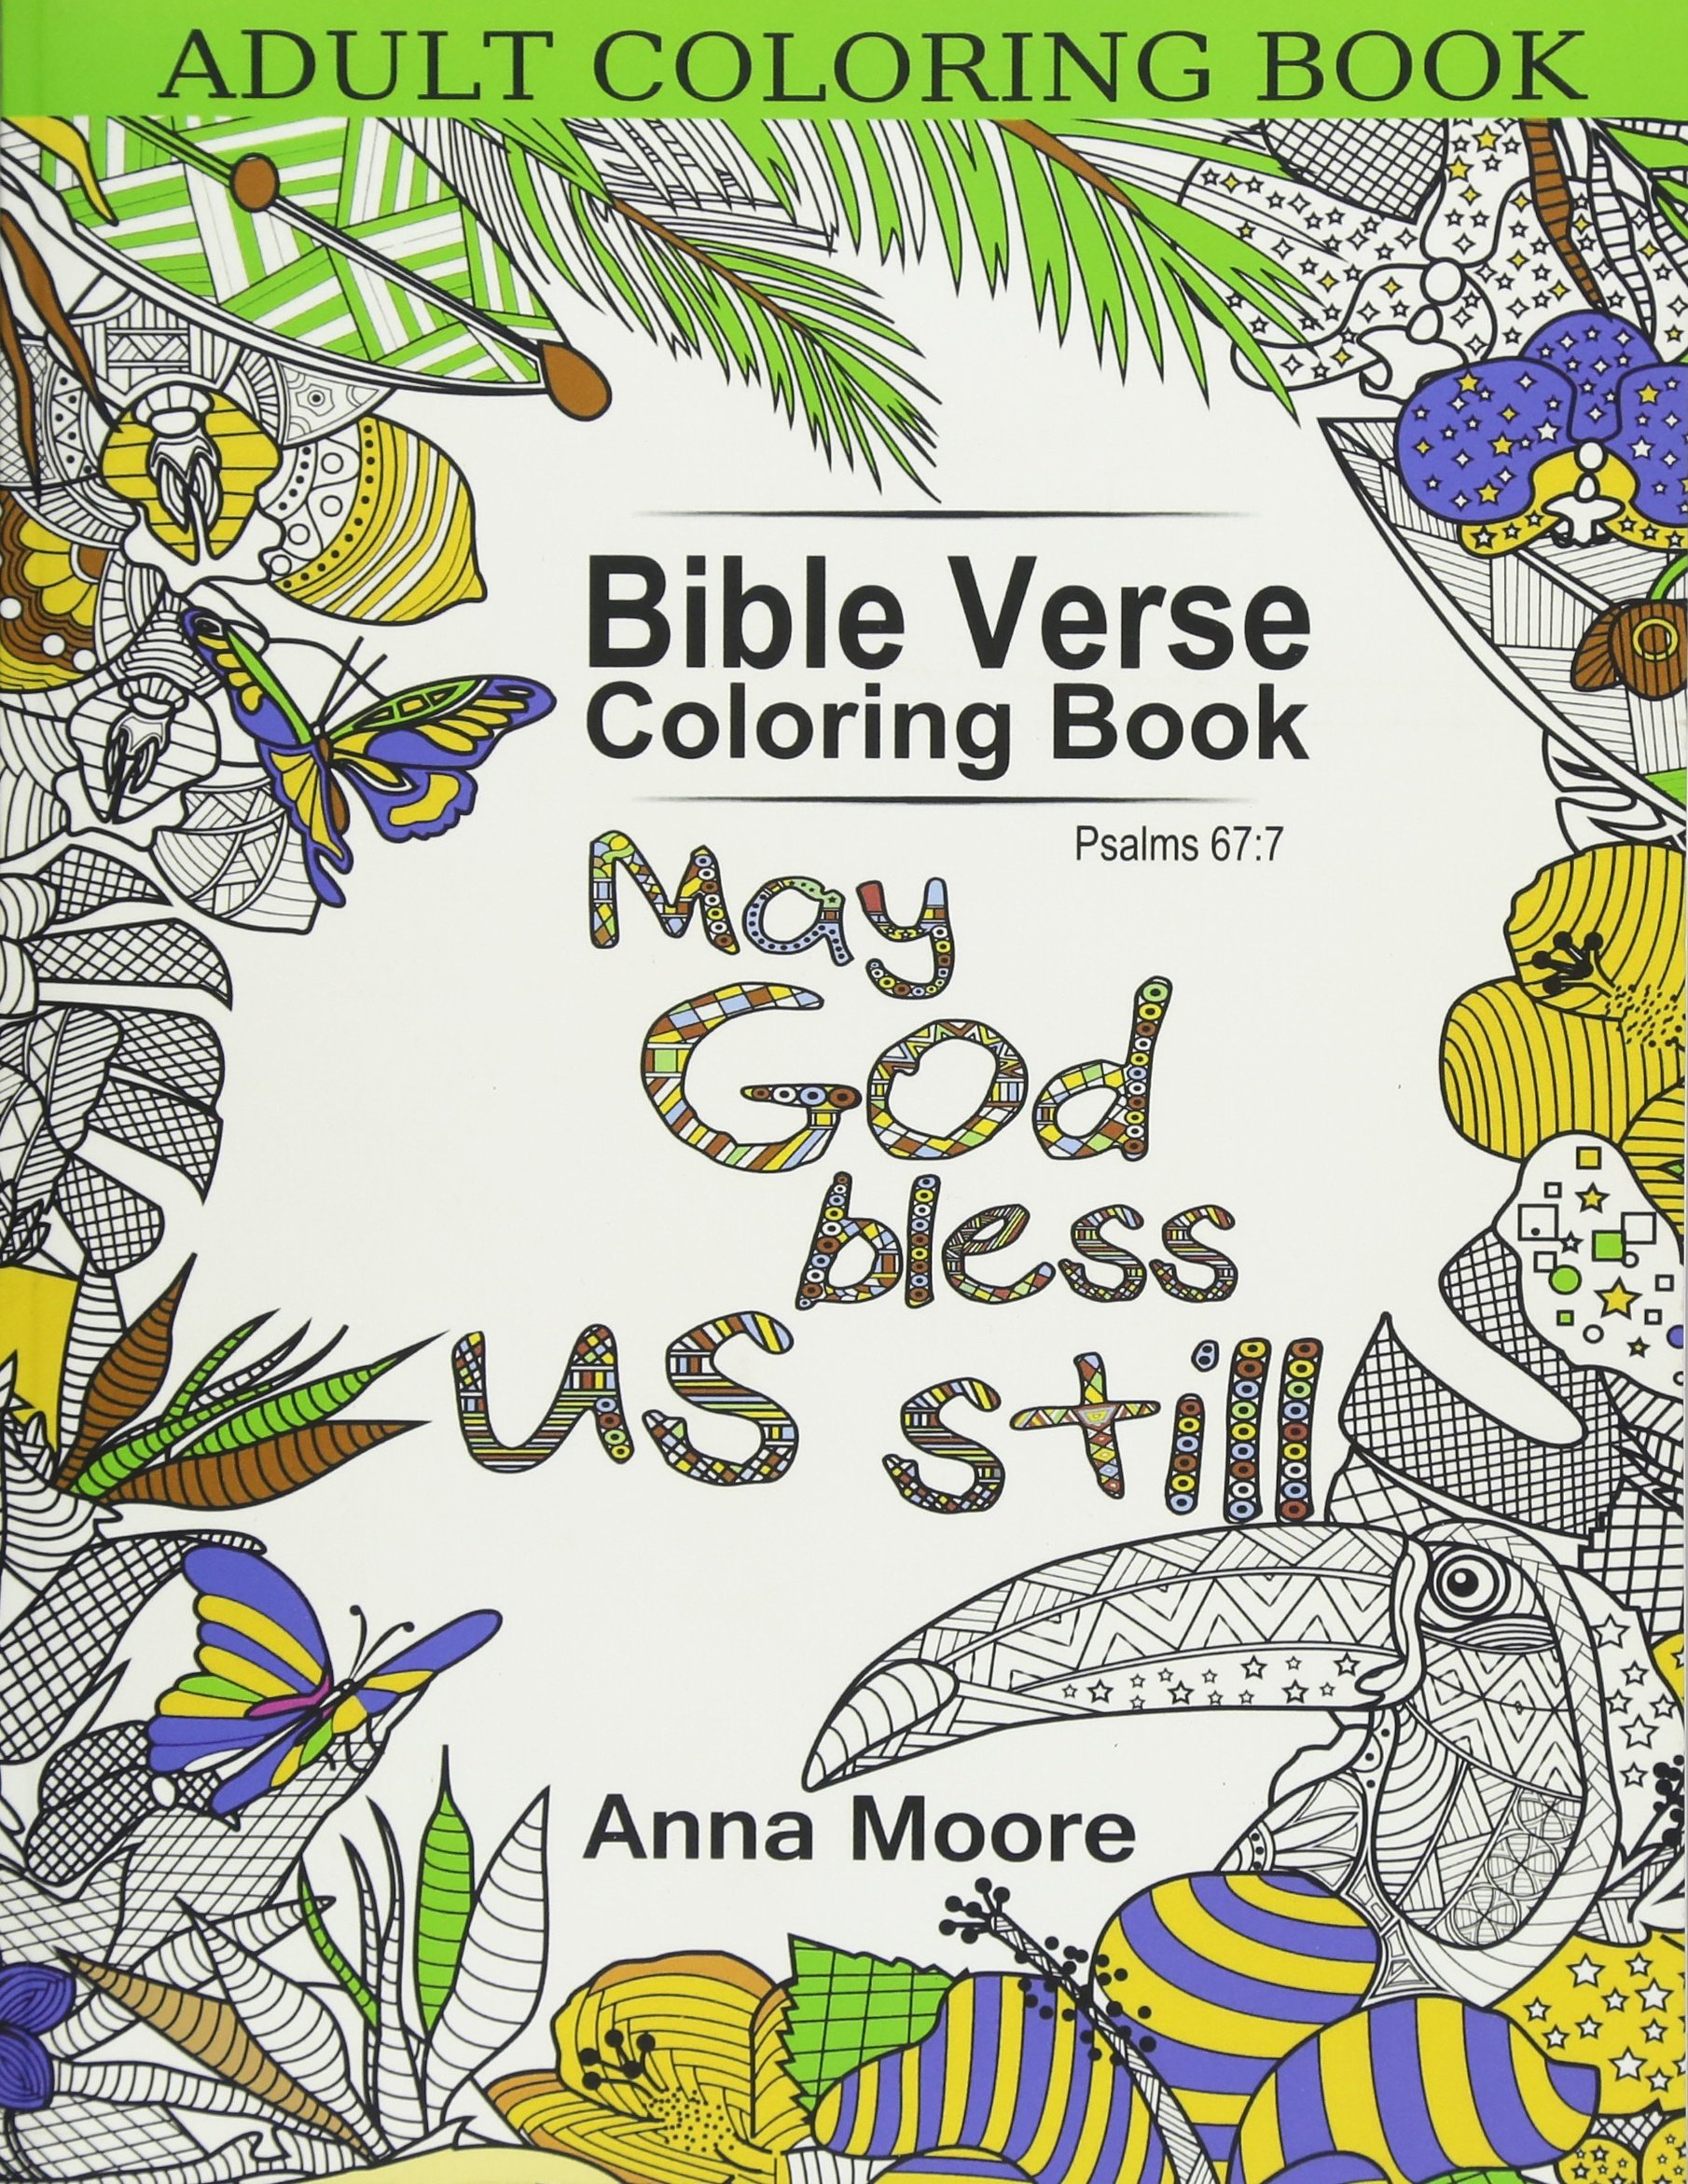 Amazon.com: Adult Coloring Book: Bible Verse Coloring Book ...